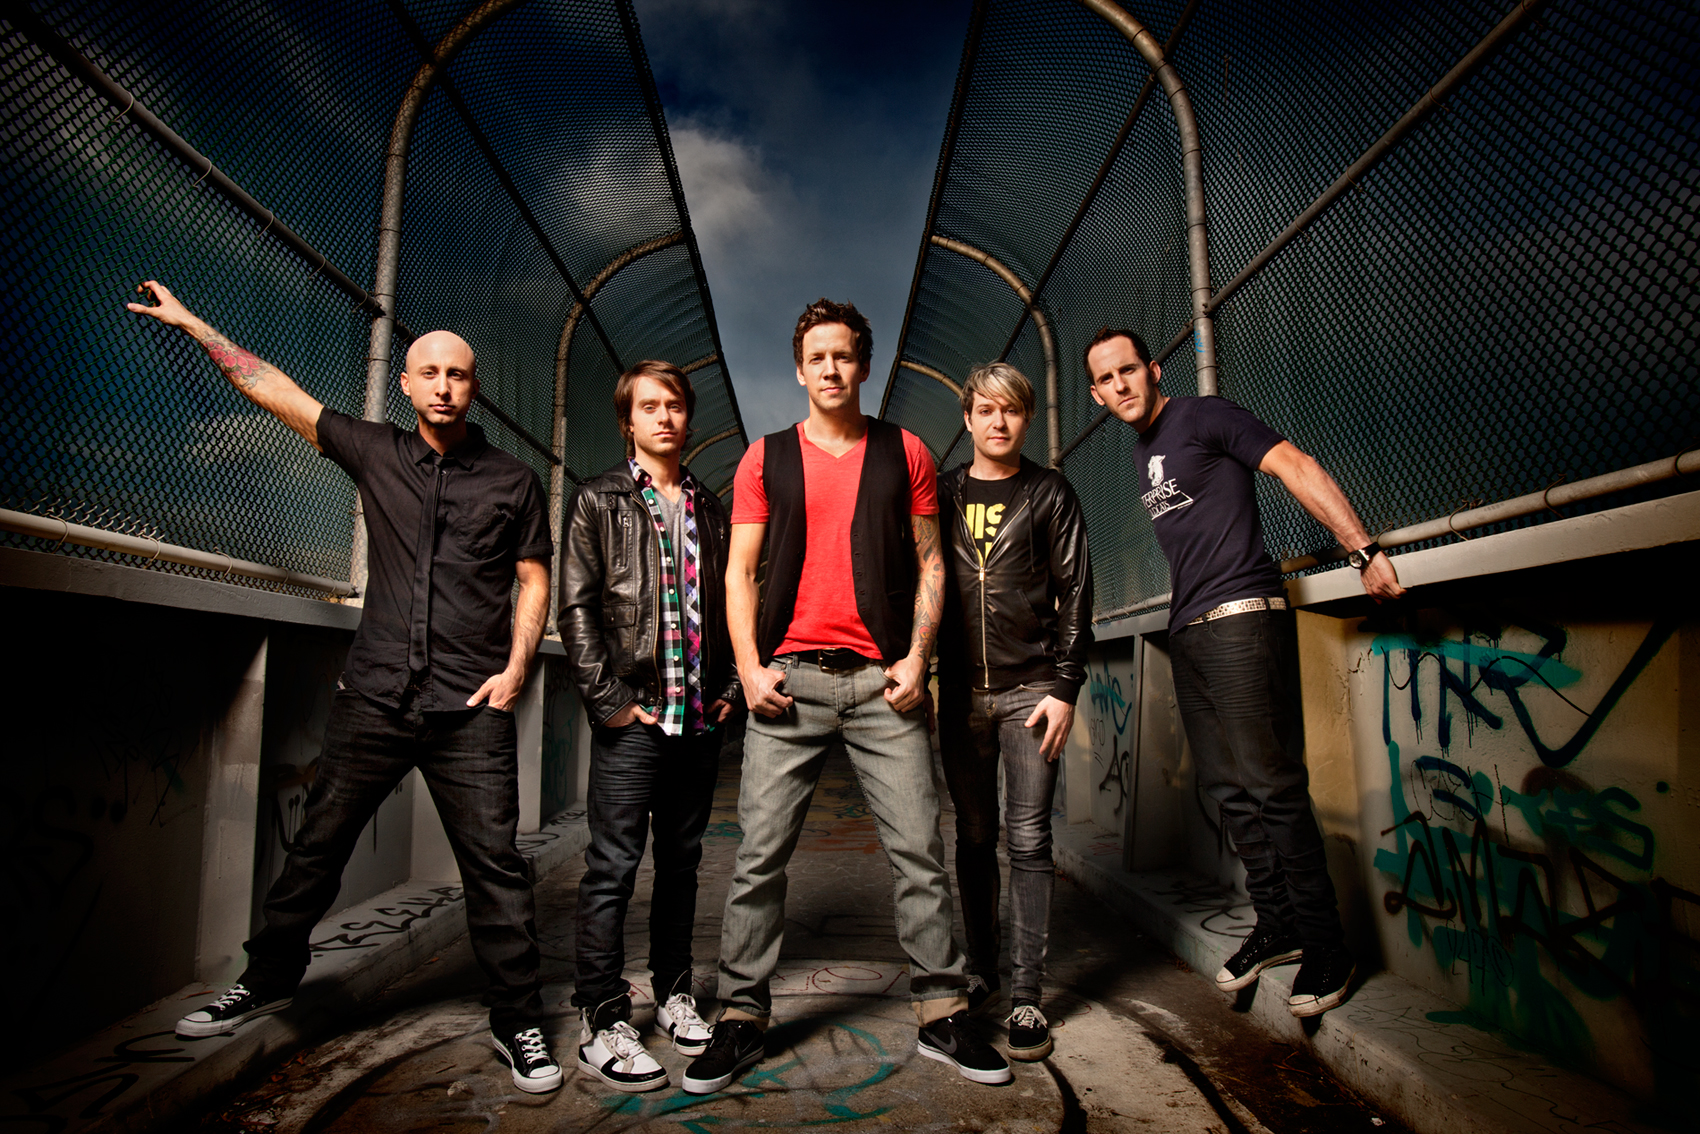 SIMPLE PLAN TO BE HONORED WITH THE ALLAN SLAIGHT HUMANITARIAN SPIRIT ...